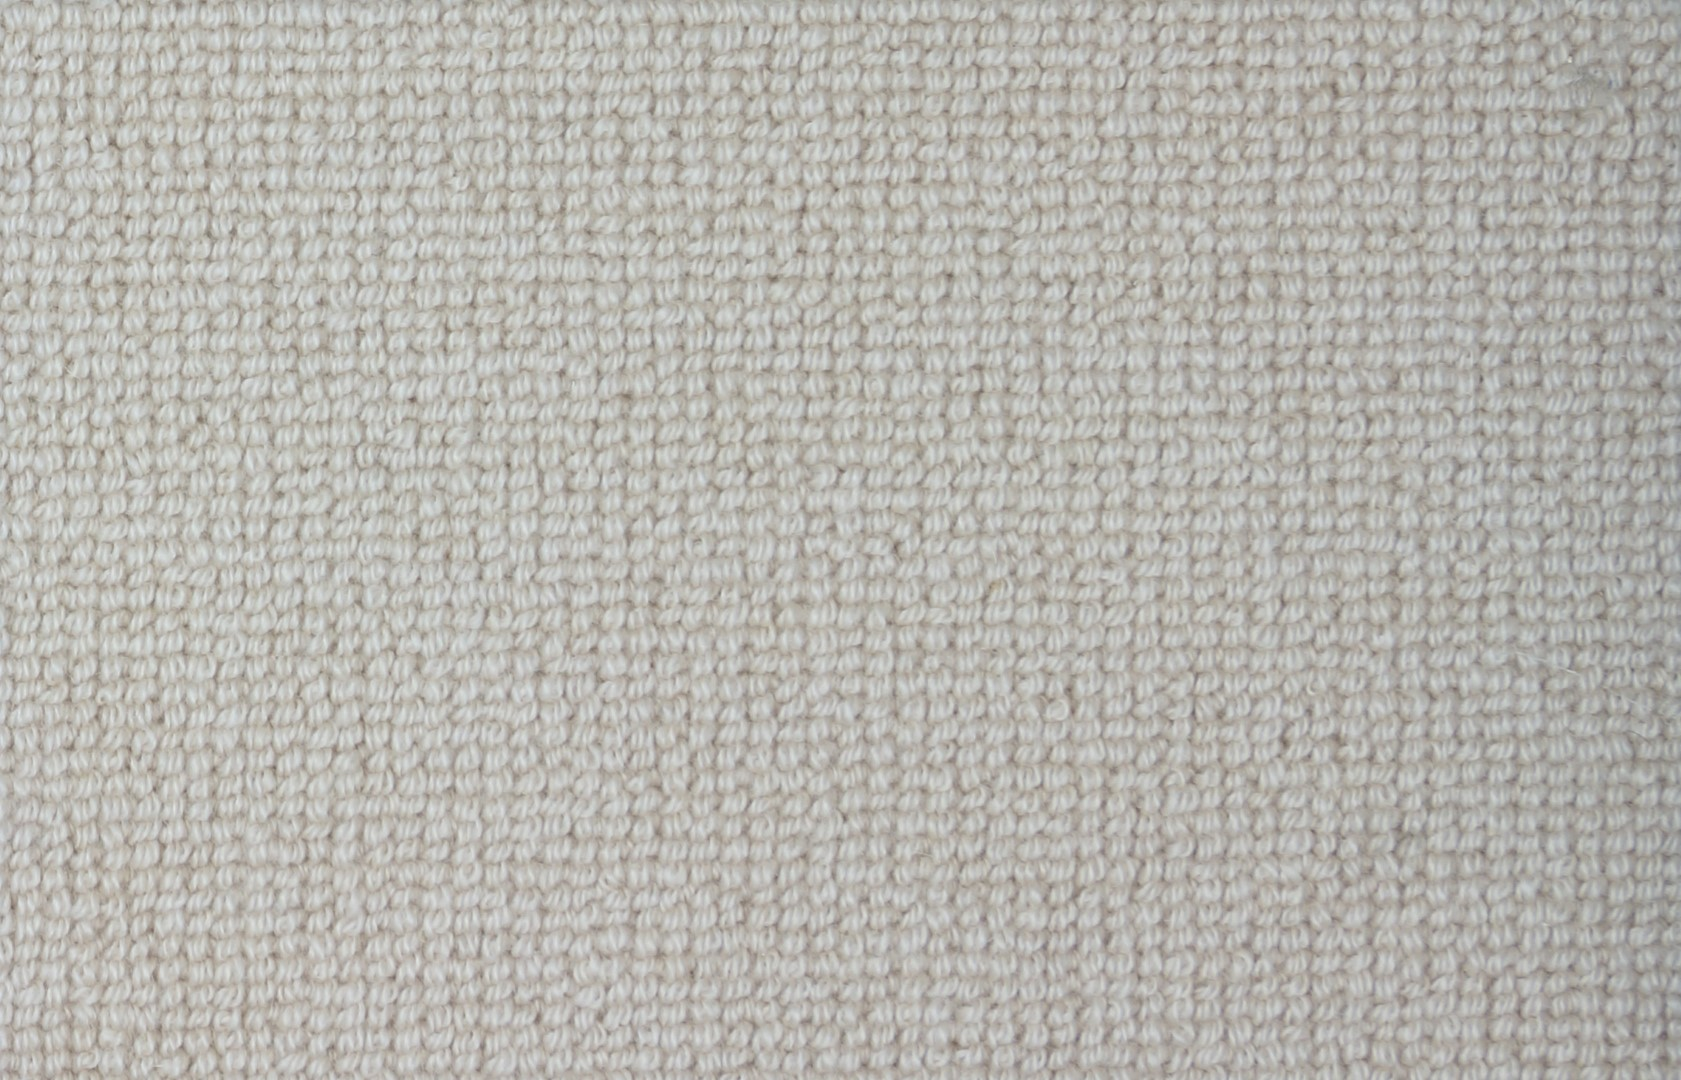 Moquette textur e 100 laine avana beige collection for Moquette rouge texture